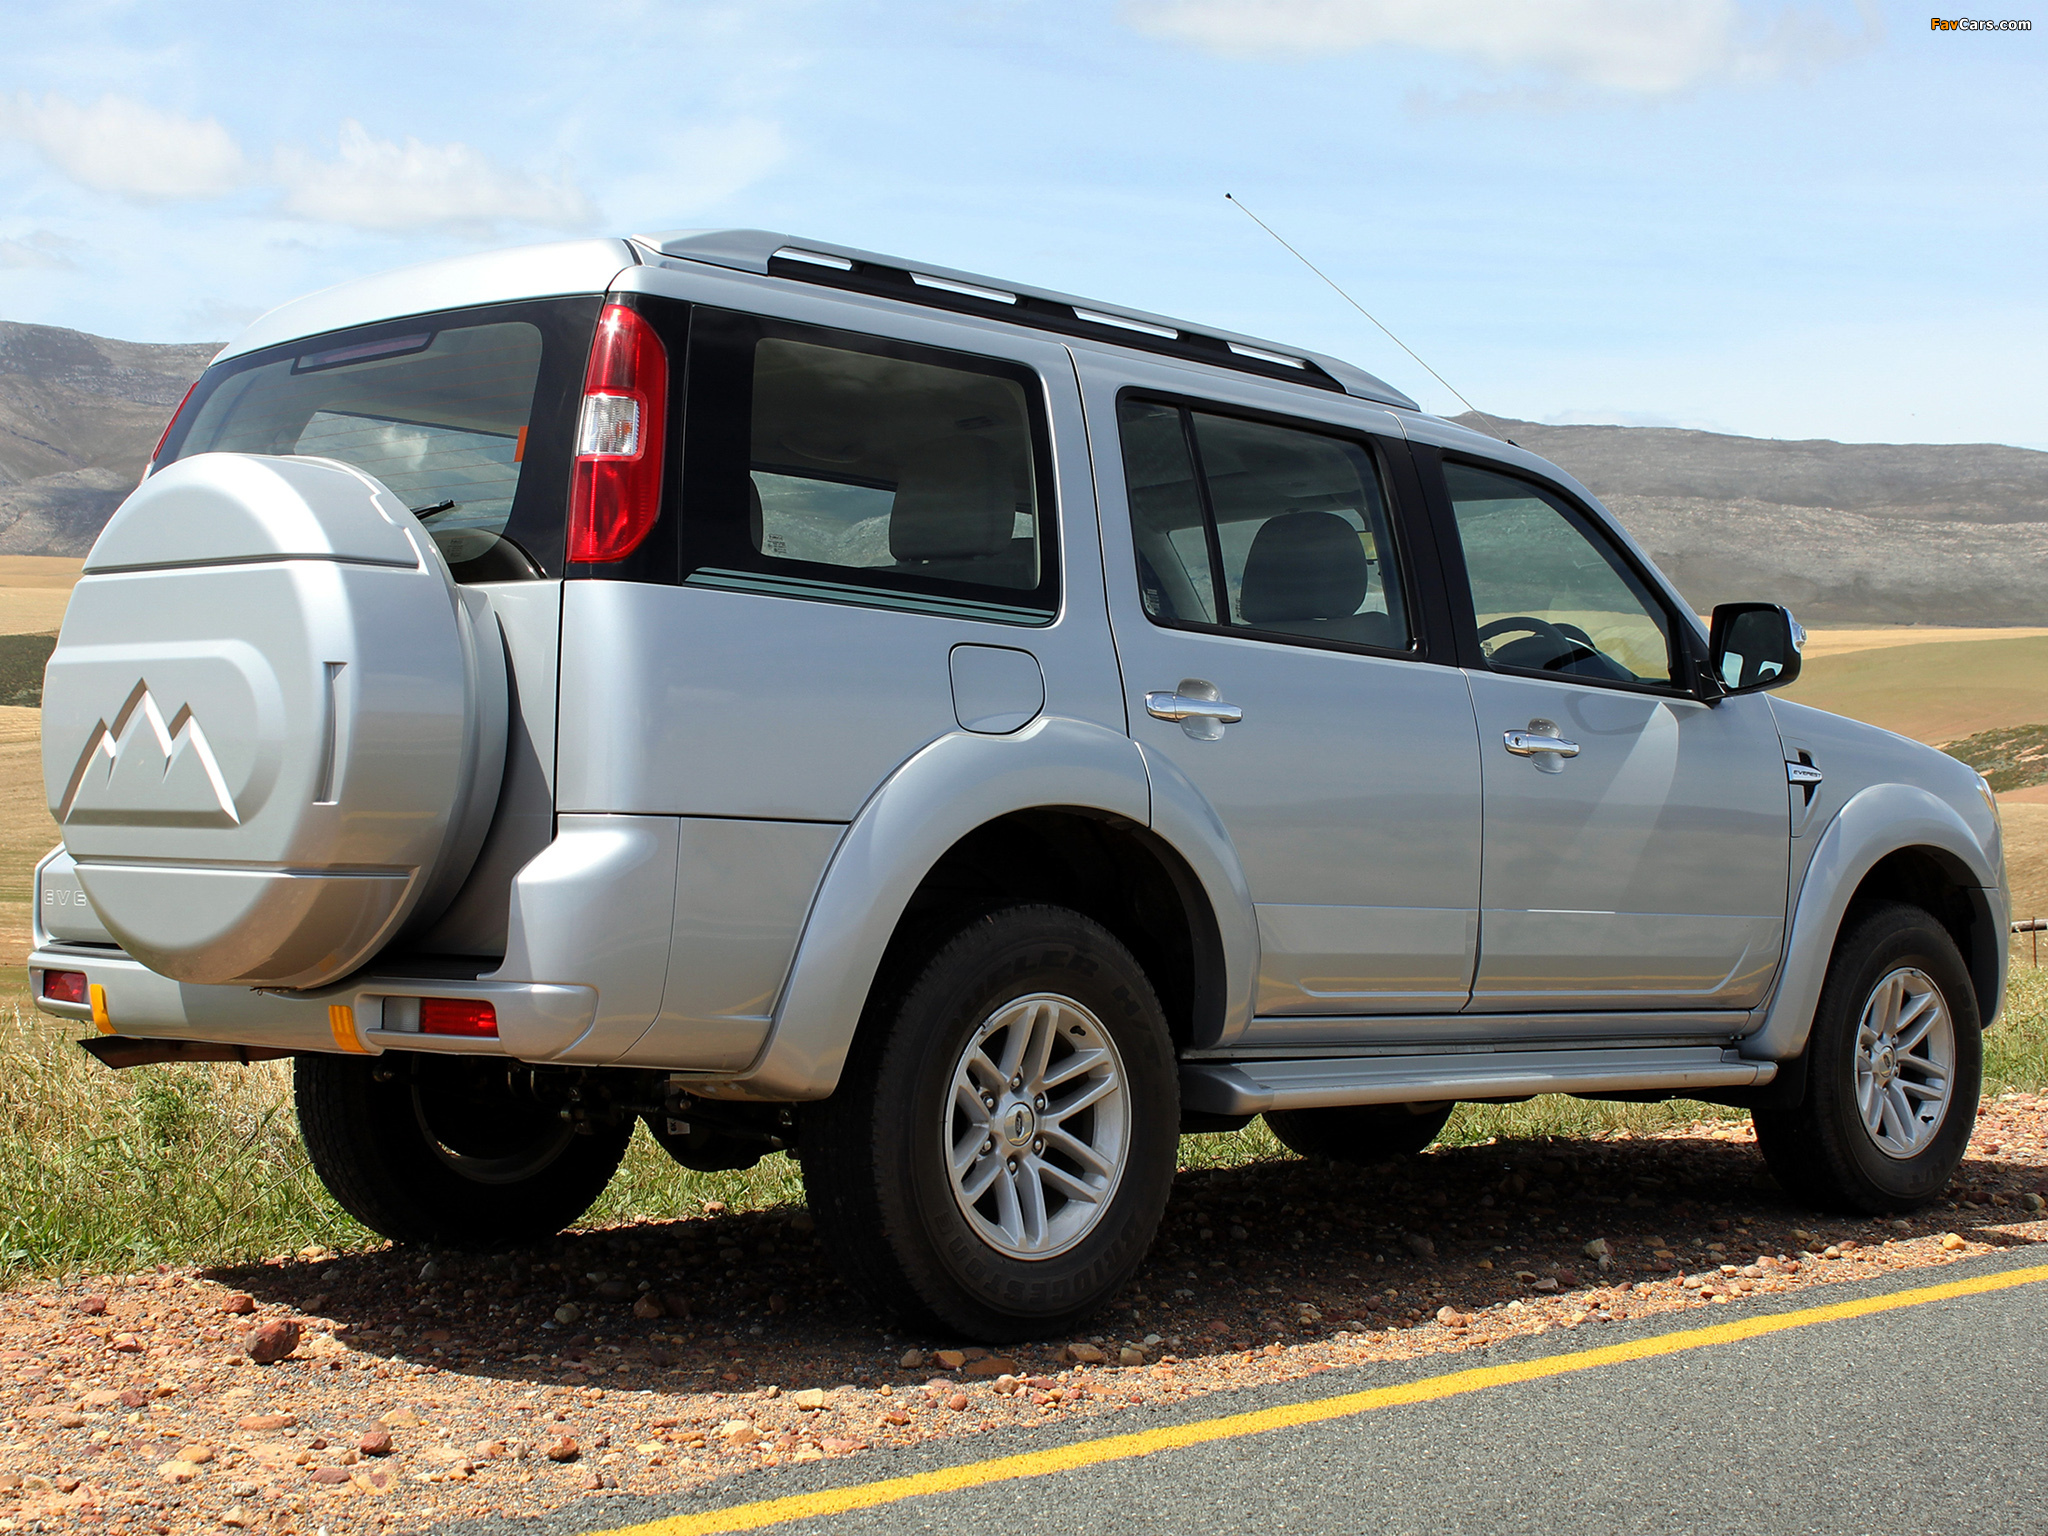 Ford Everest 2006 photo - 5